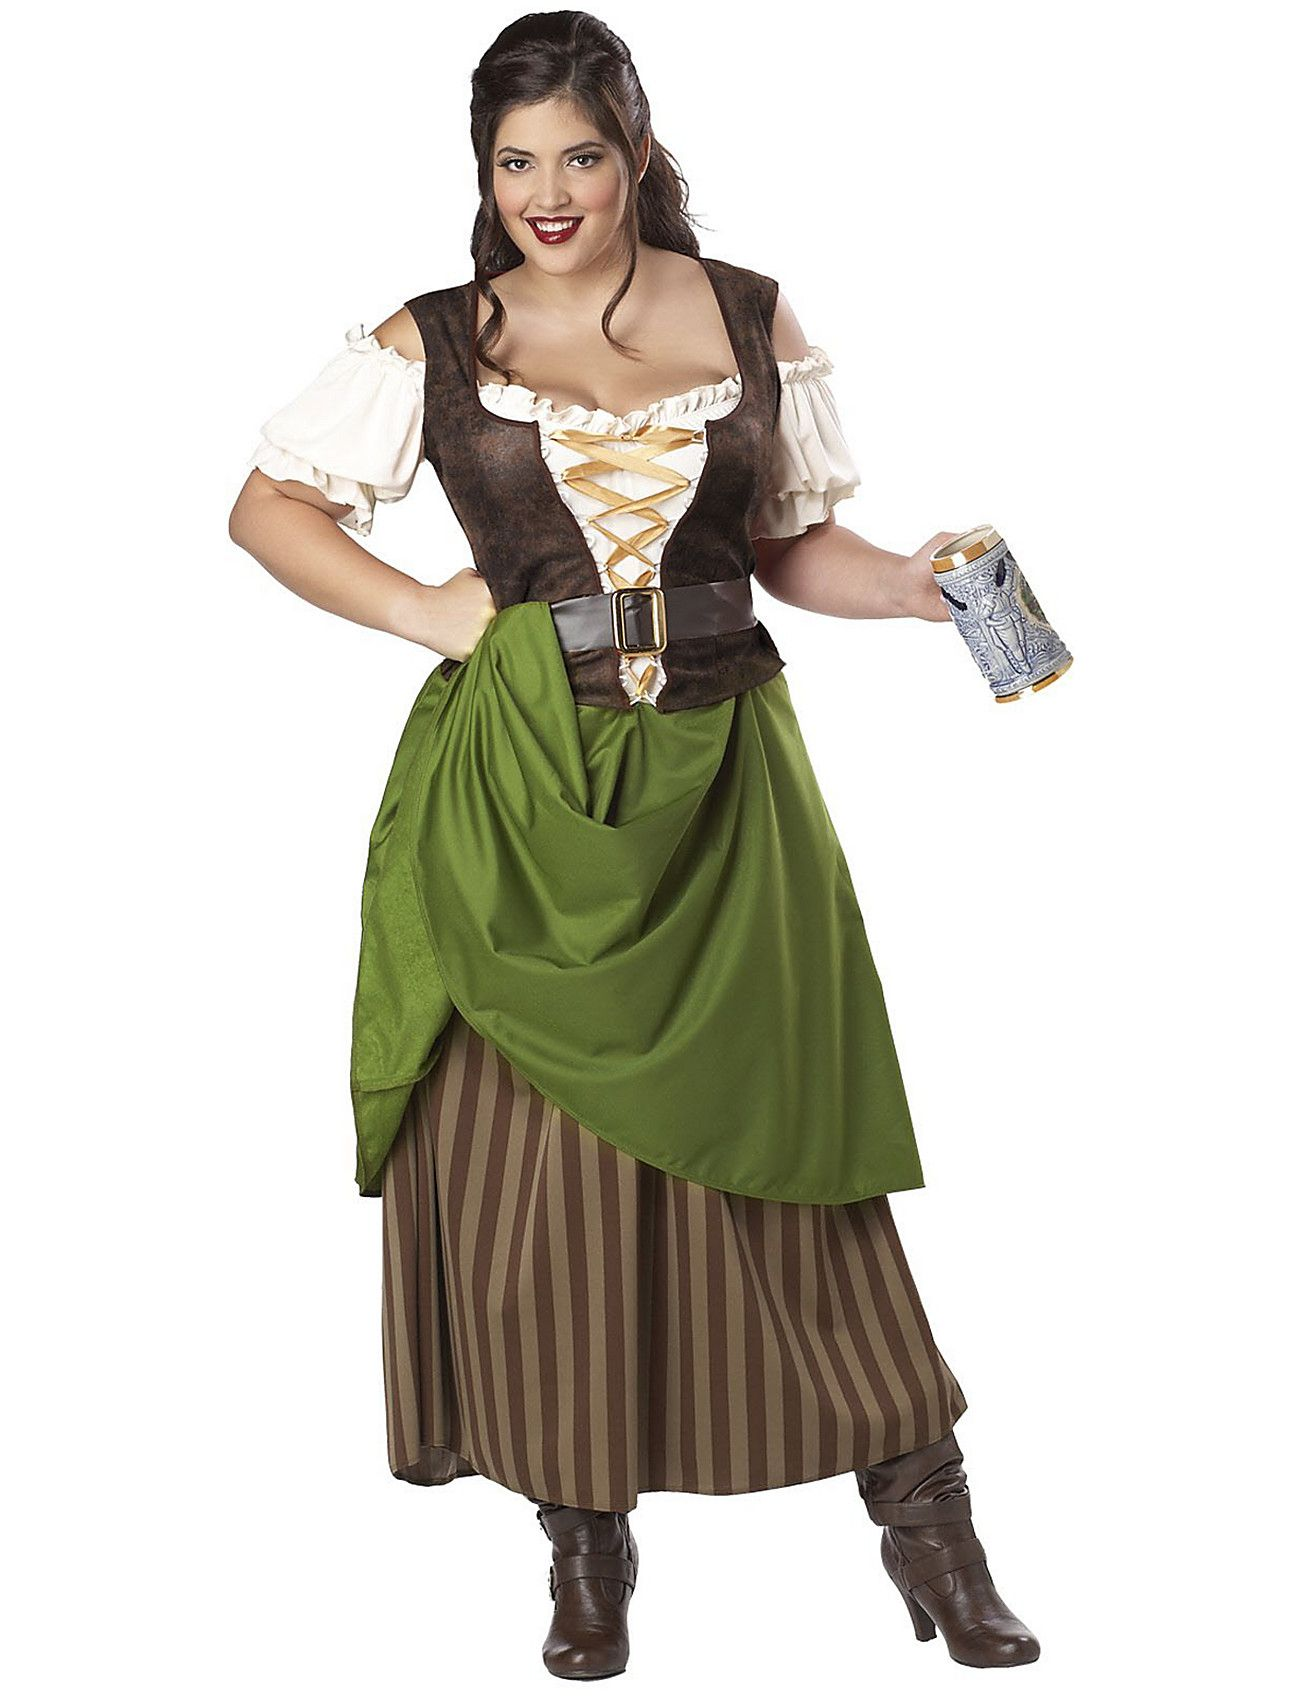 this tavern maiden adult plus costume is a great choice for a